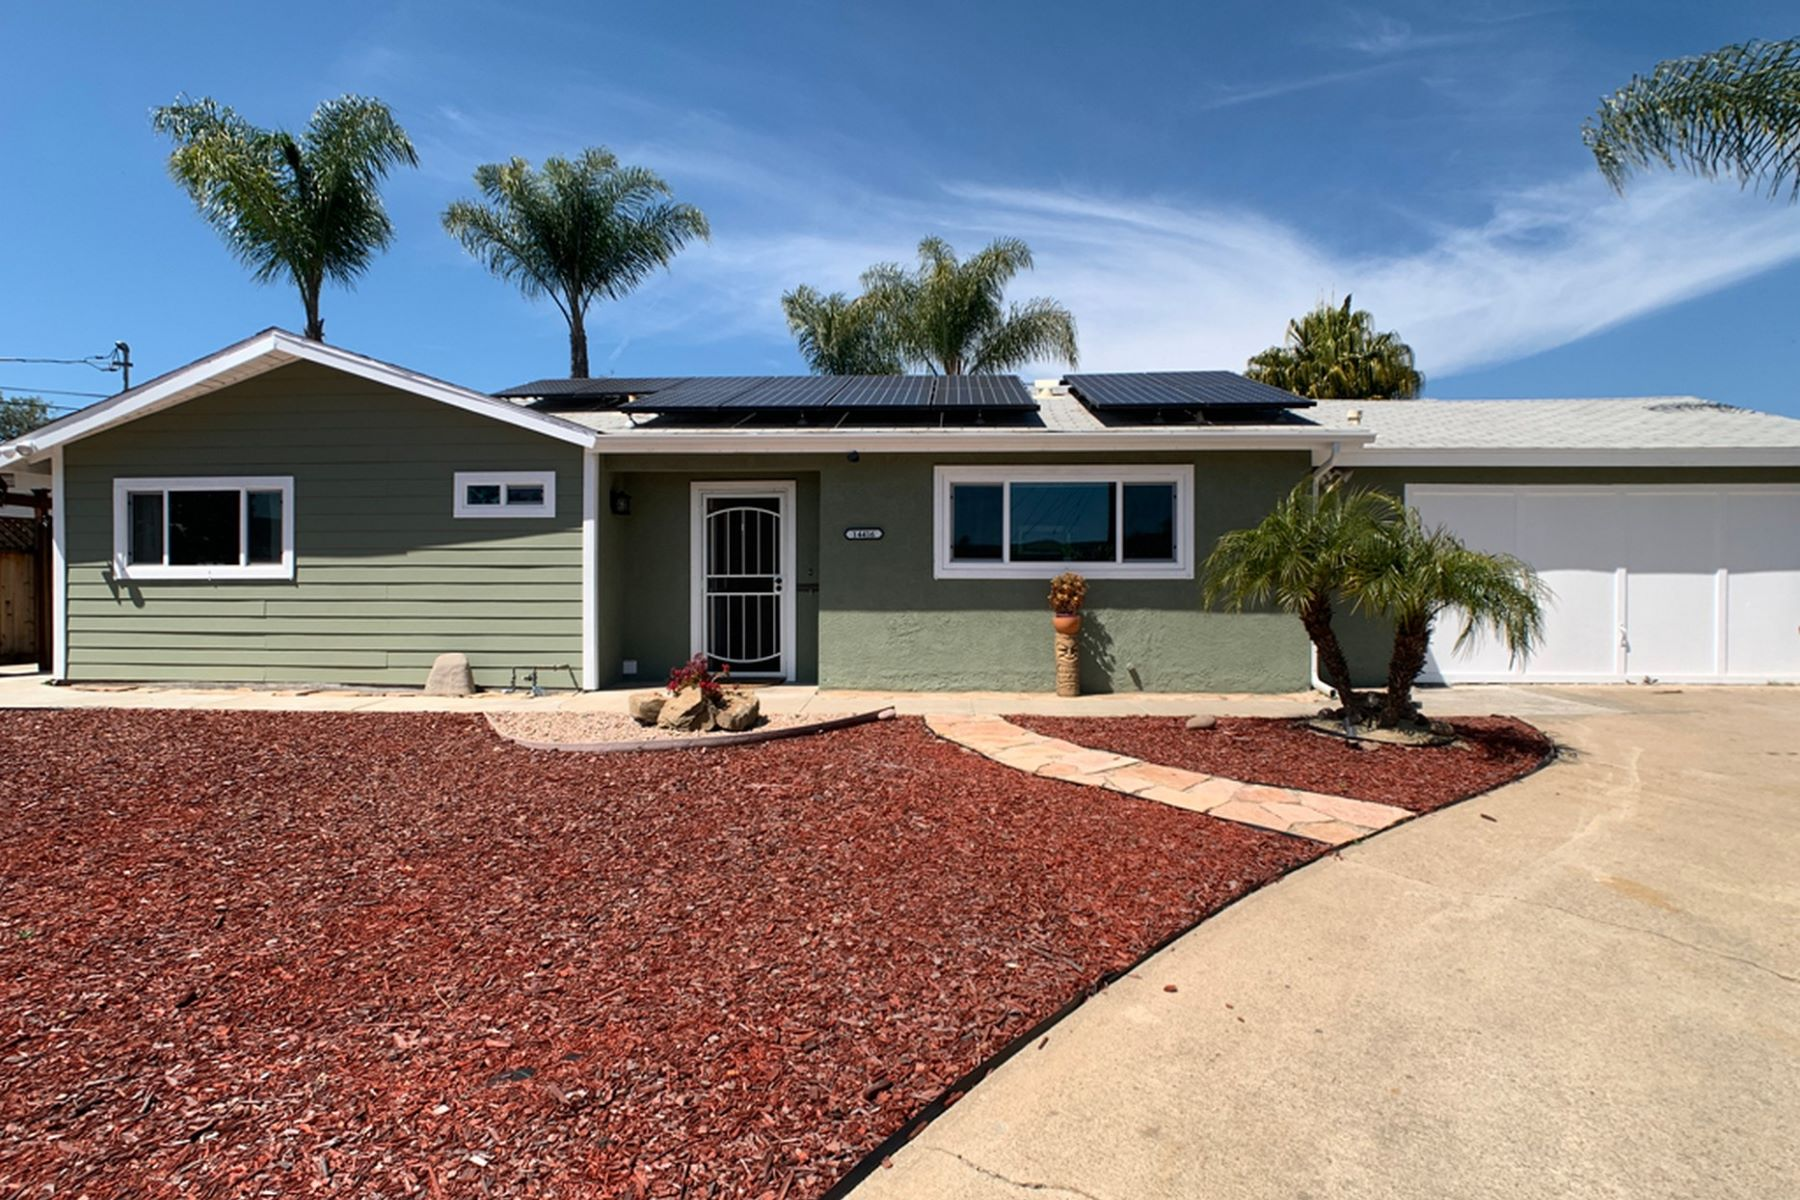 Single Family Homes for Sale at Your Own Private Paradise 14416 Springvale St Poway, California 92064 United States